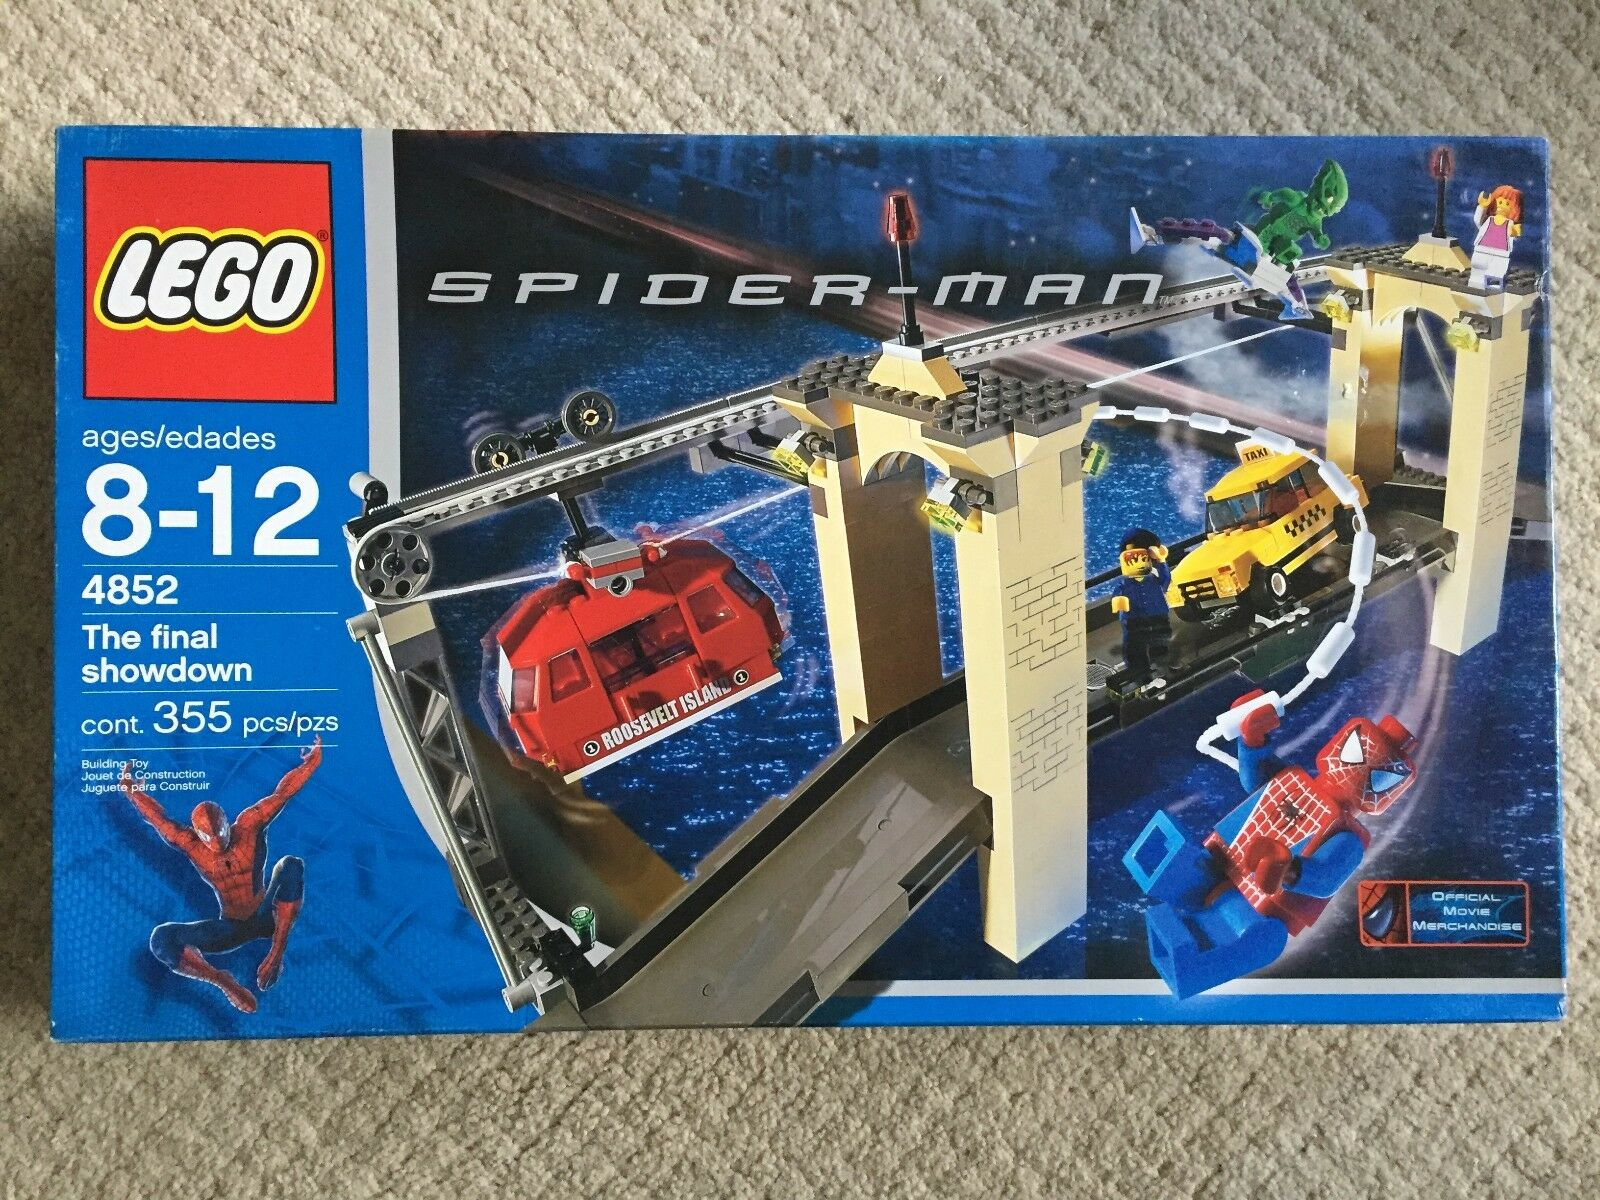 Lego The Final Showdown (4852) Spider-Man. New Factory Sealed Early Minifig